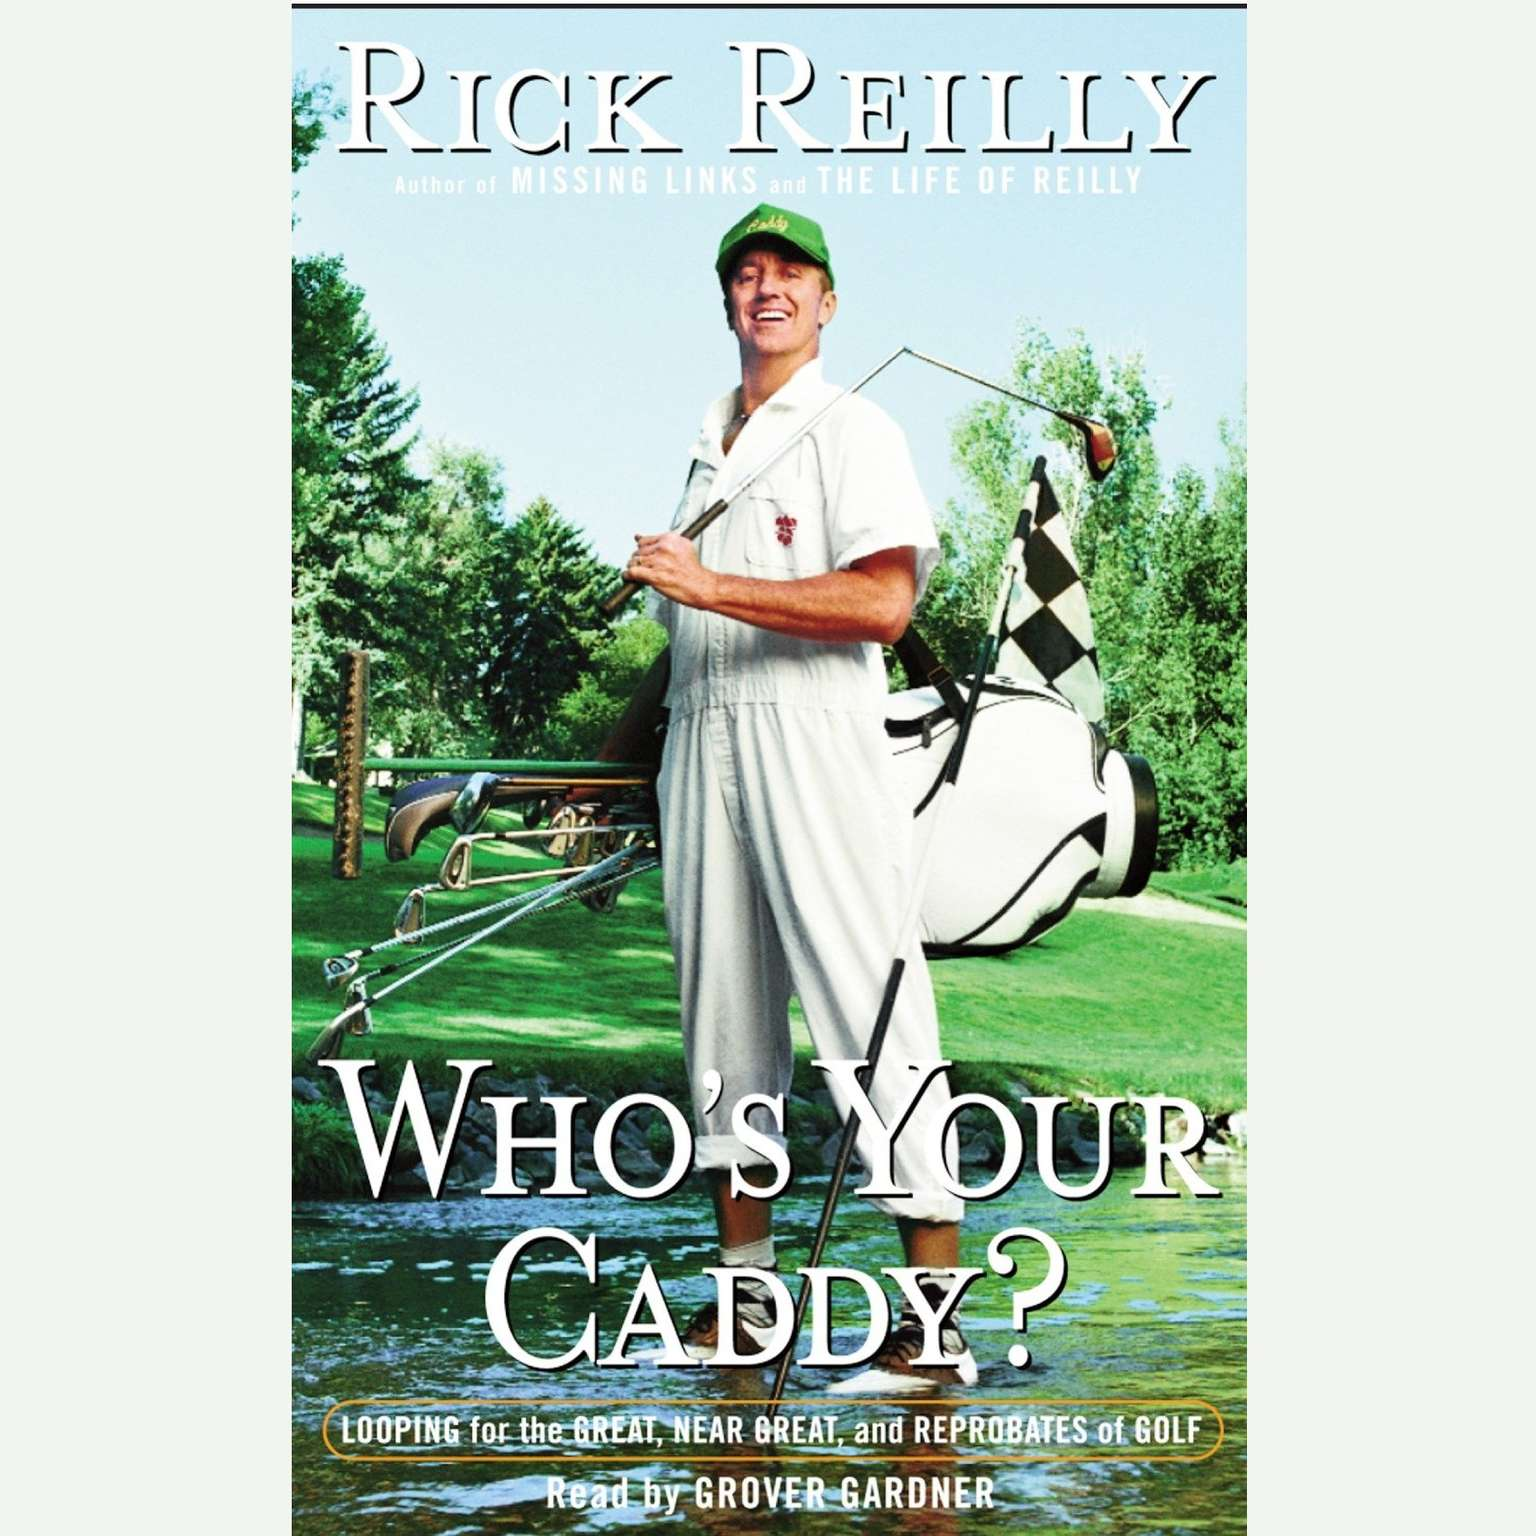 Printable Who's Your Caddy?: Looping For the Great, Near Great and Reprobates of Golf Audiobook Cover Art